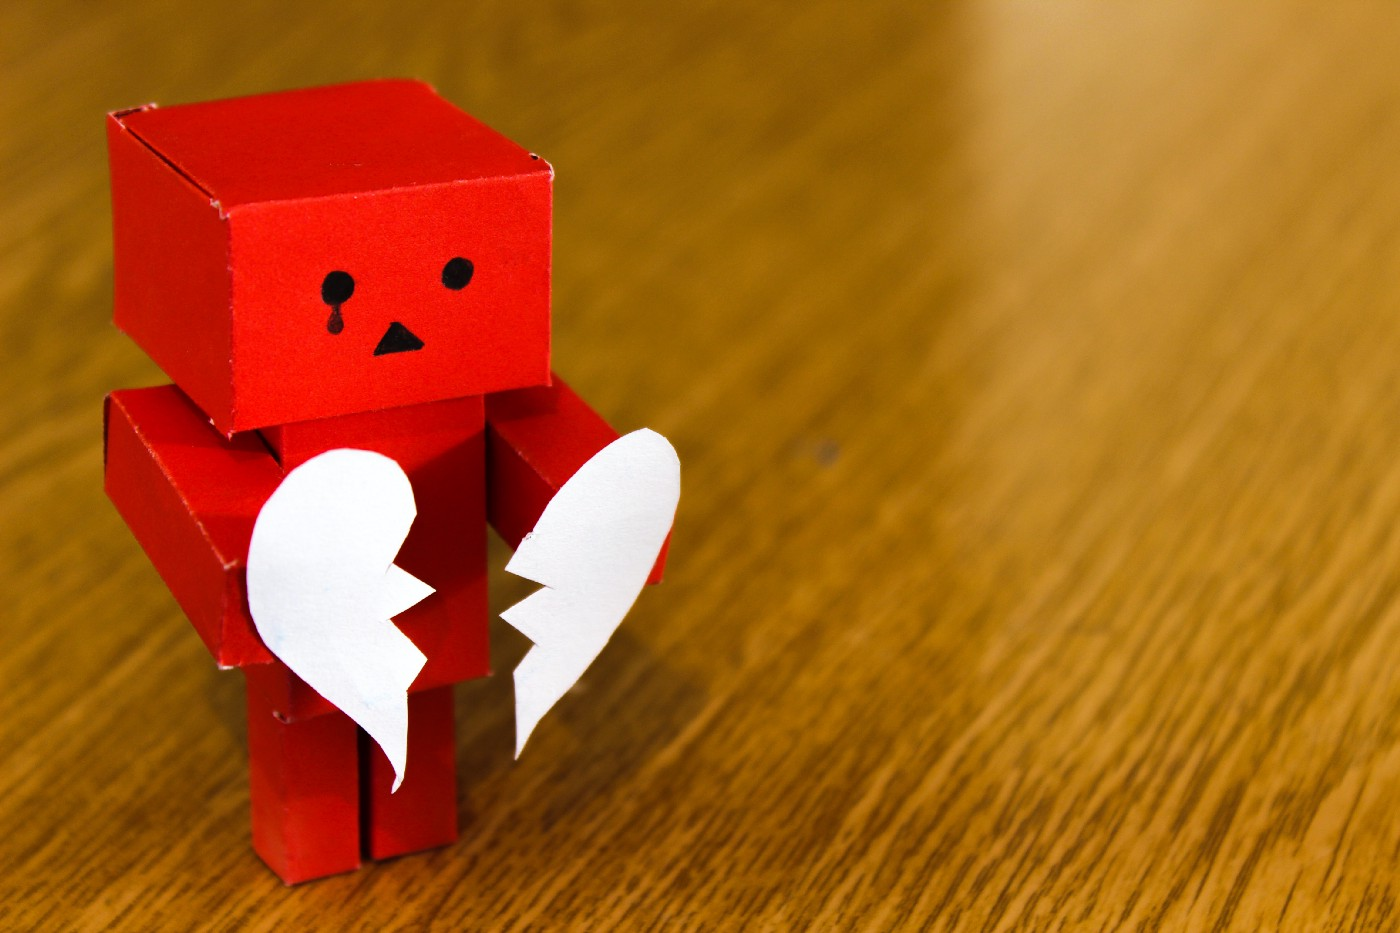 Fear of rejection: a small red robot who is heartbroken